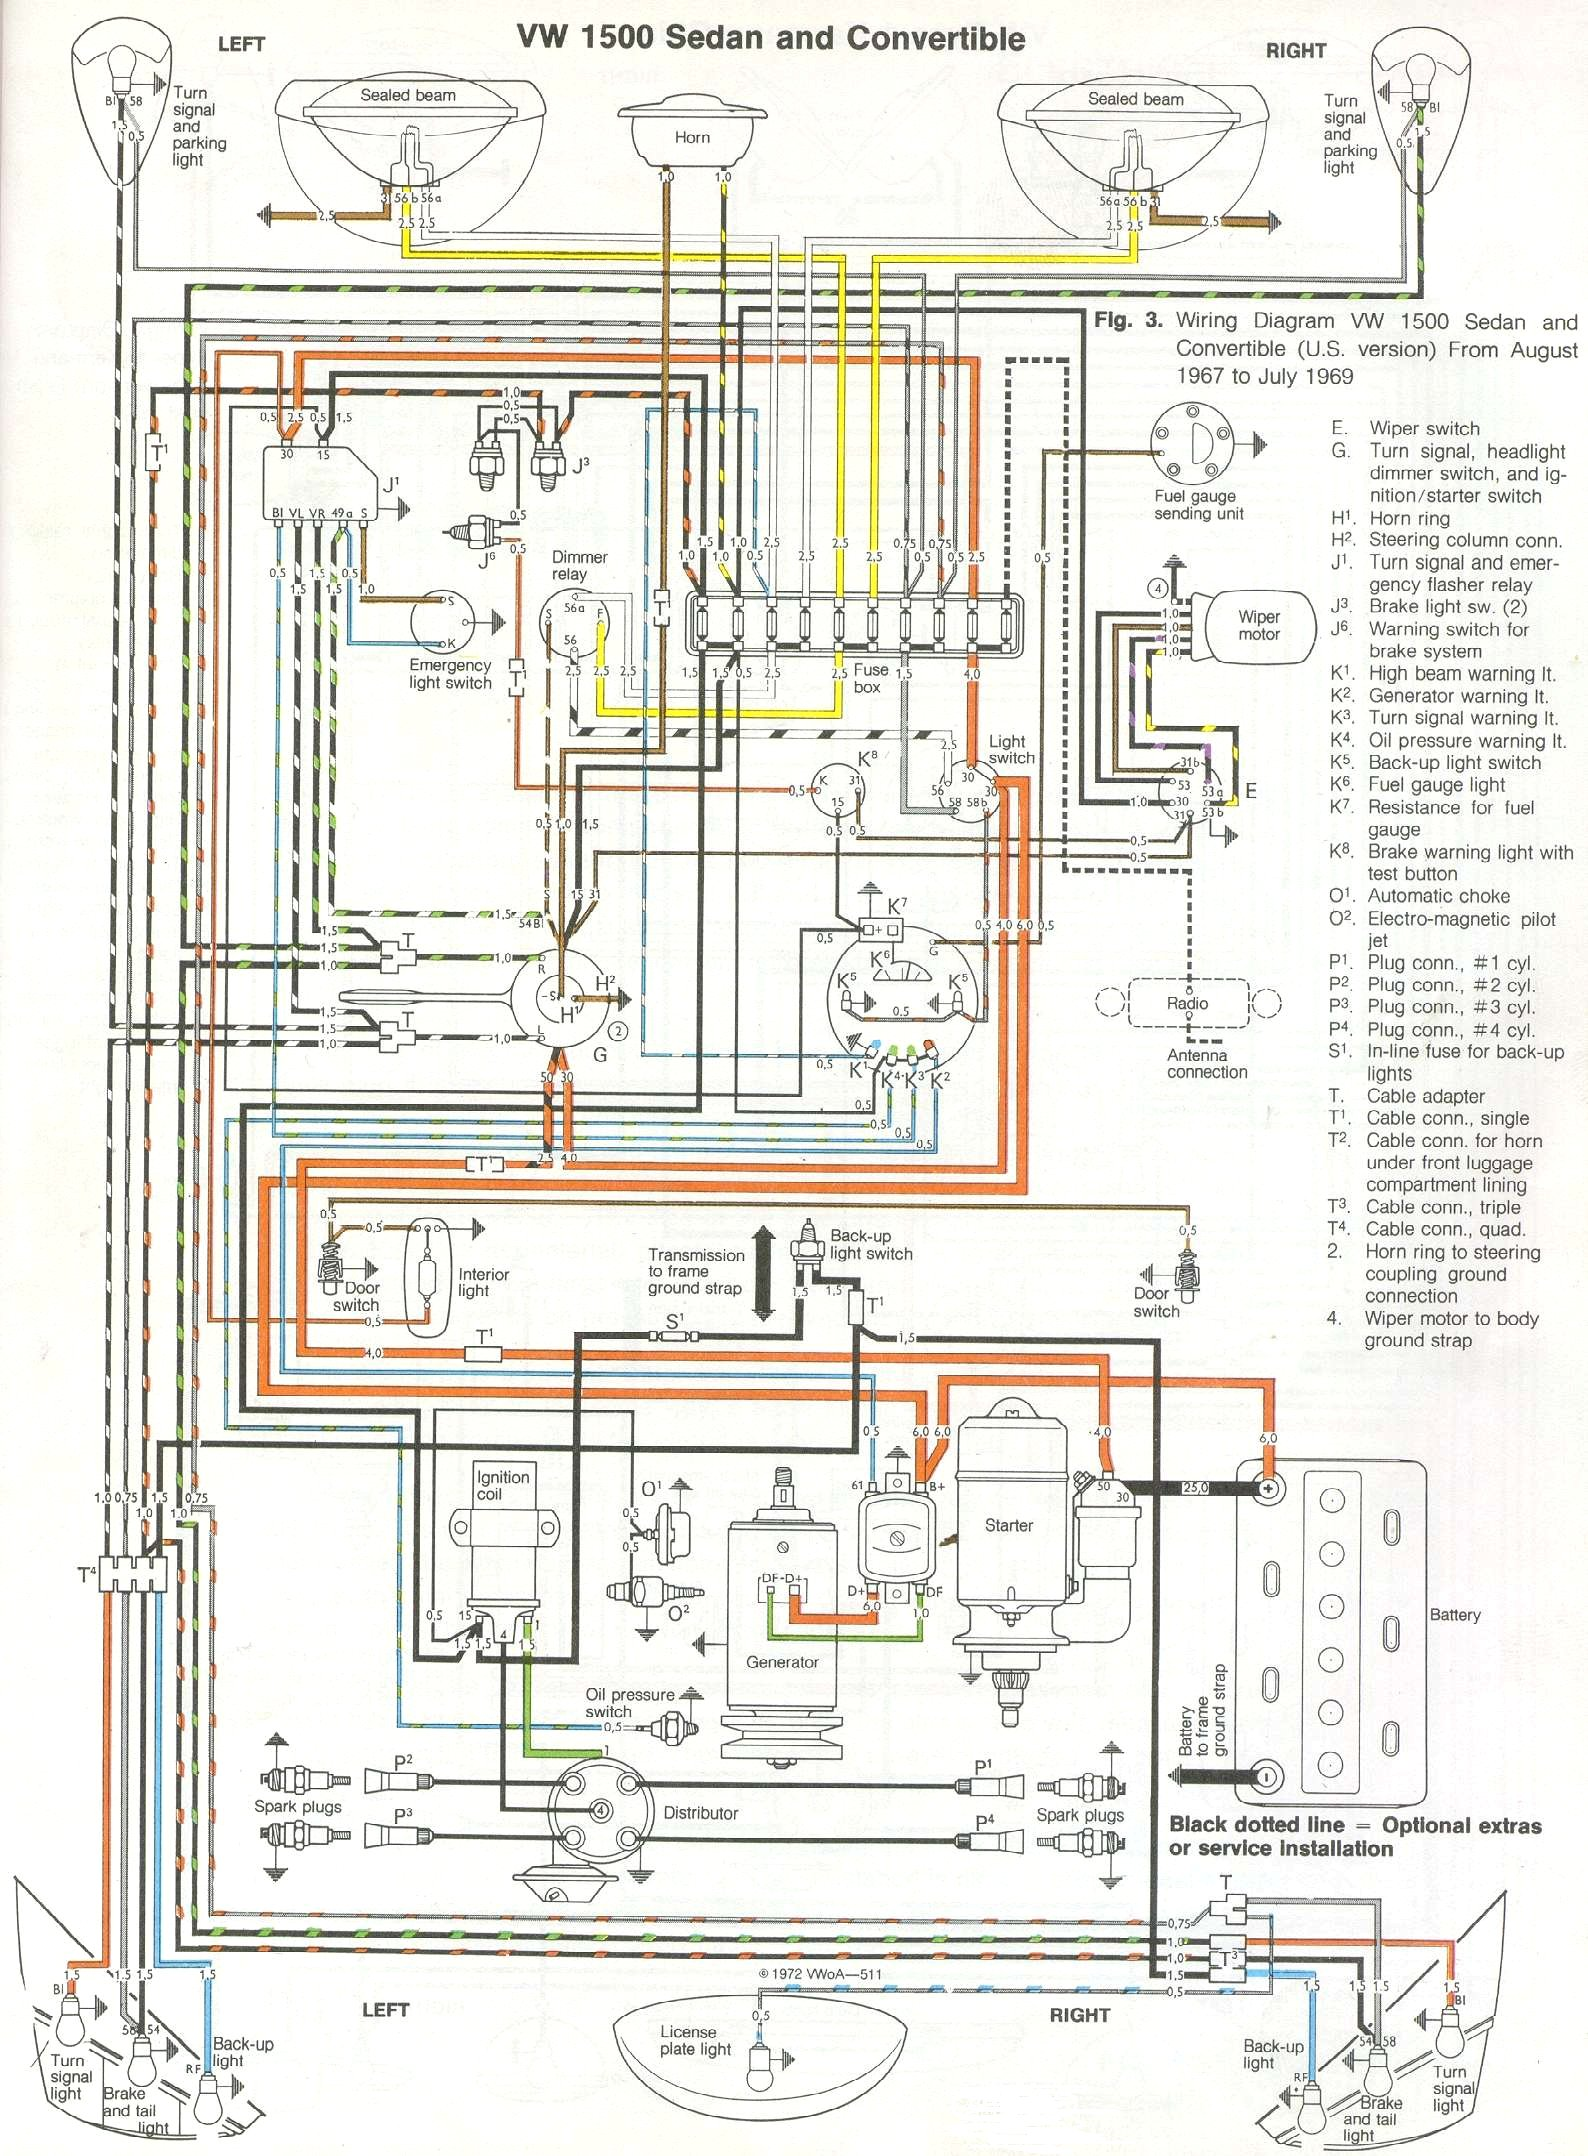 bug_6869 1969 71 beetle wiring diagram thegoldenbug com 1970 vw bug wiring diagram at gsmportal.co